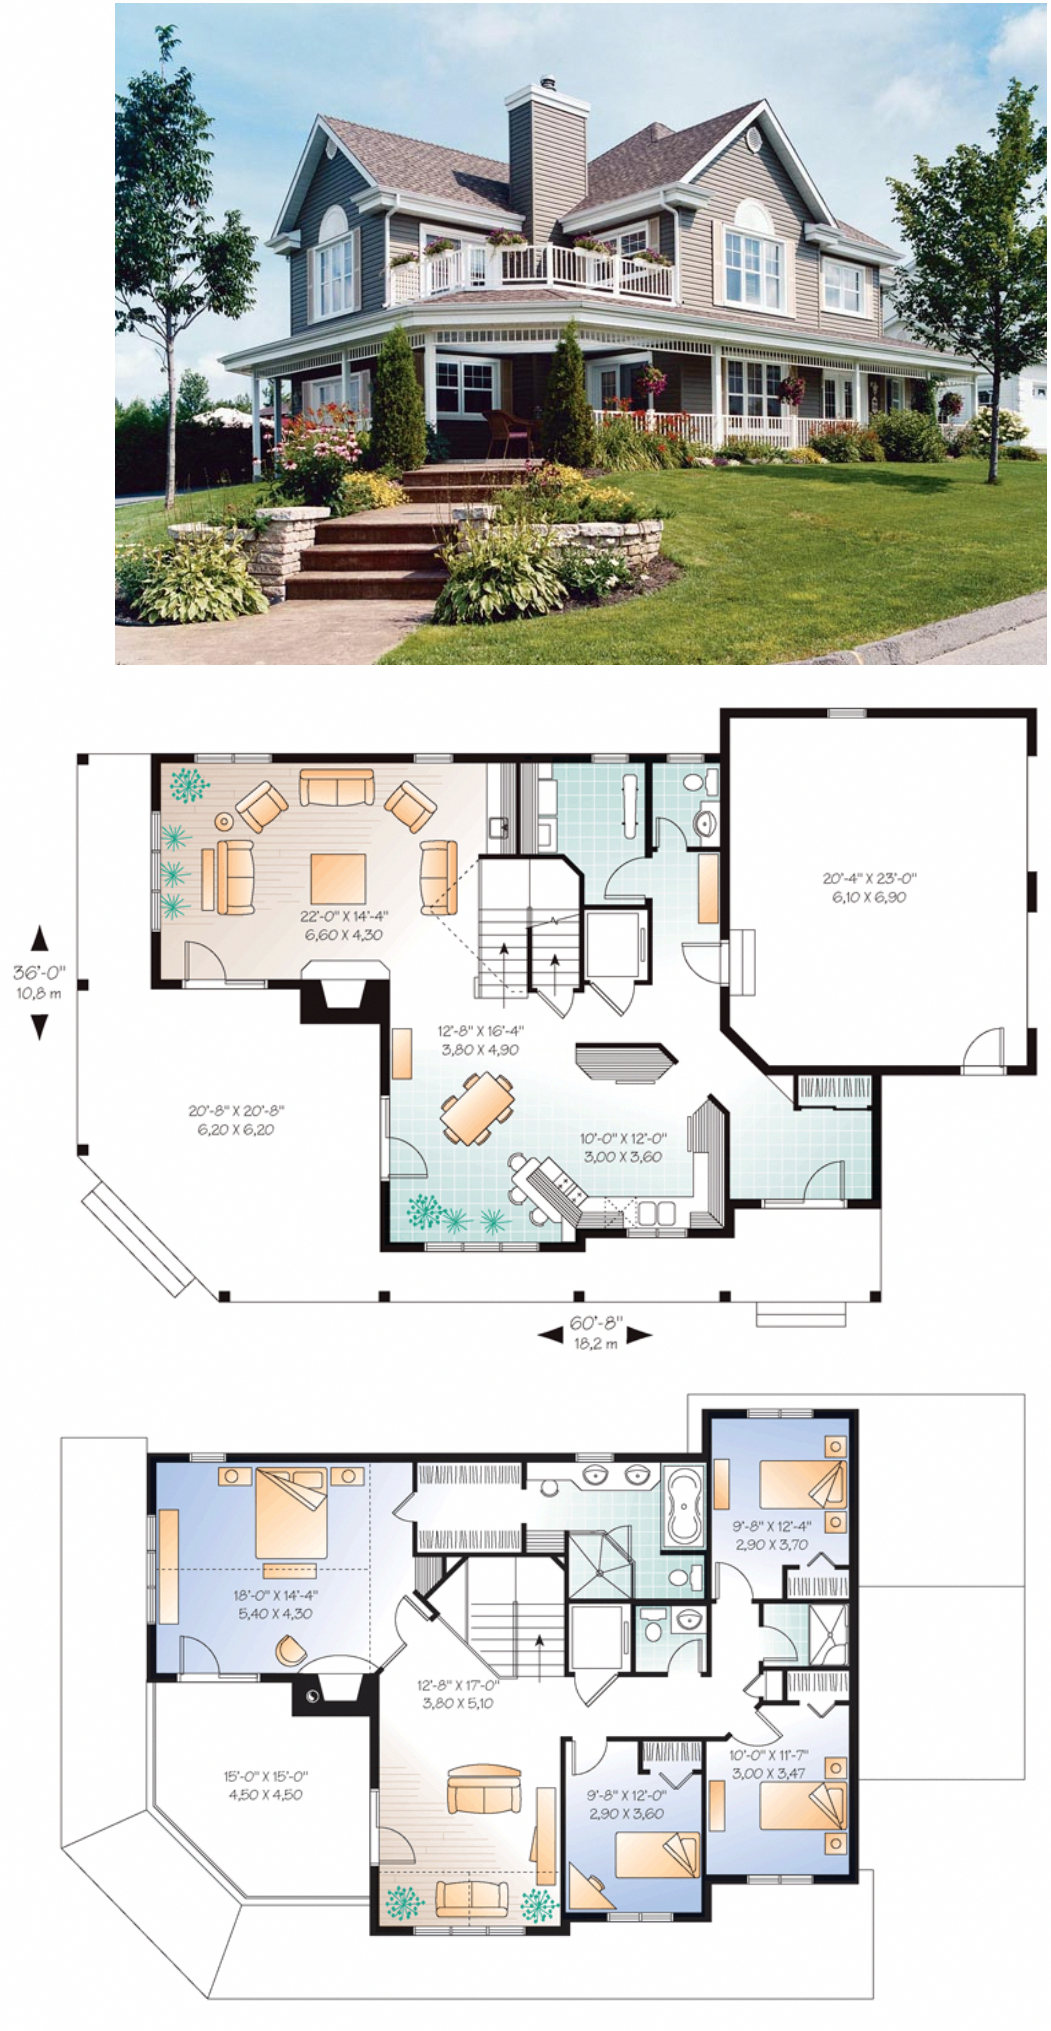 I Love The Wrap Around Porch And The Walkway With The Landscaping Leading Up To The House Dr Country Style House Plans Sims House Plans House Plans Farmhouse